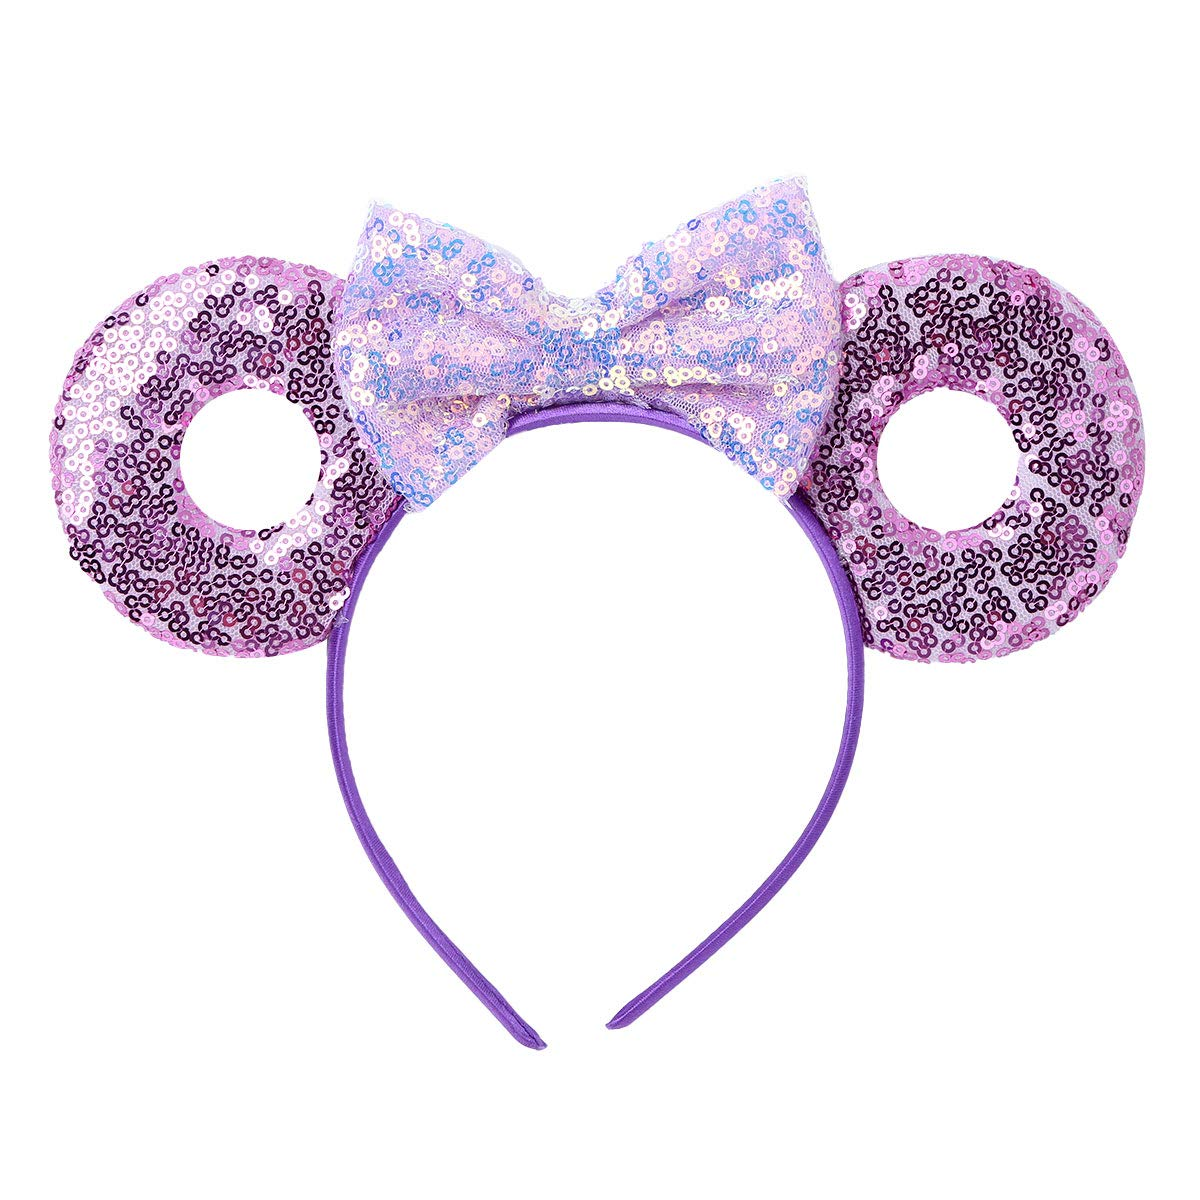 YiZYiF Girls Cute Glitter Ears Headband Shiny Sequins Bowknot Cartoon Hairbands for Daily Wearing and Party Decoration Purple (Type C) One Size